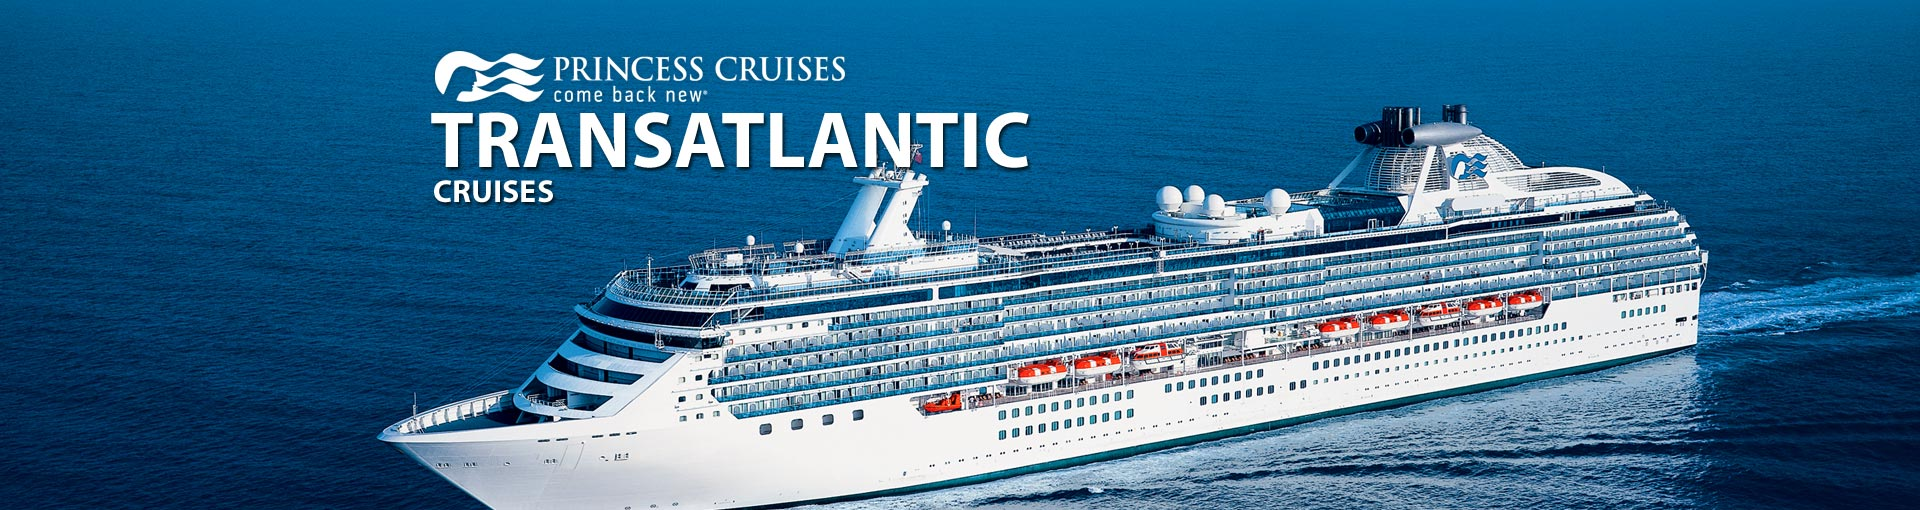 Princess Transatlantic Cruises